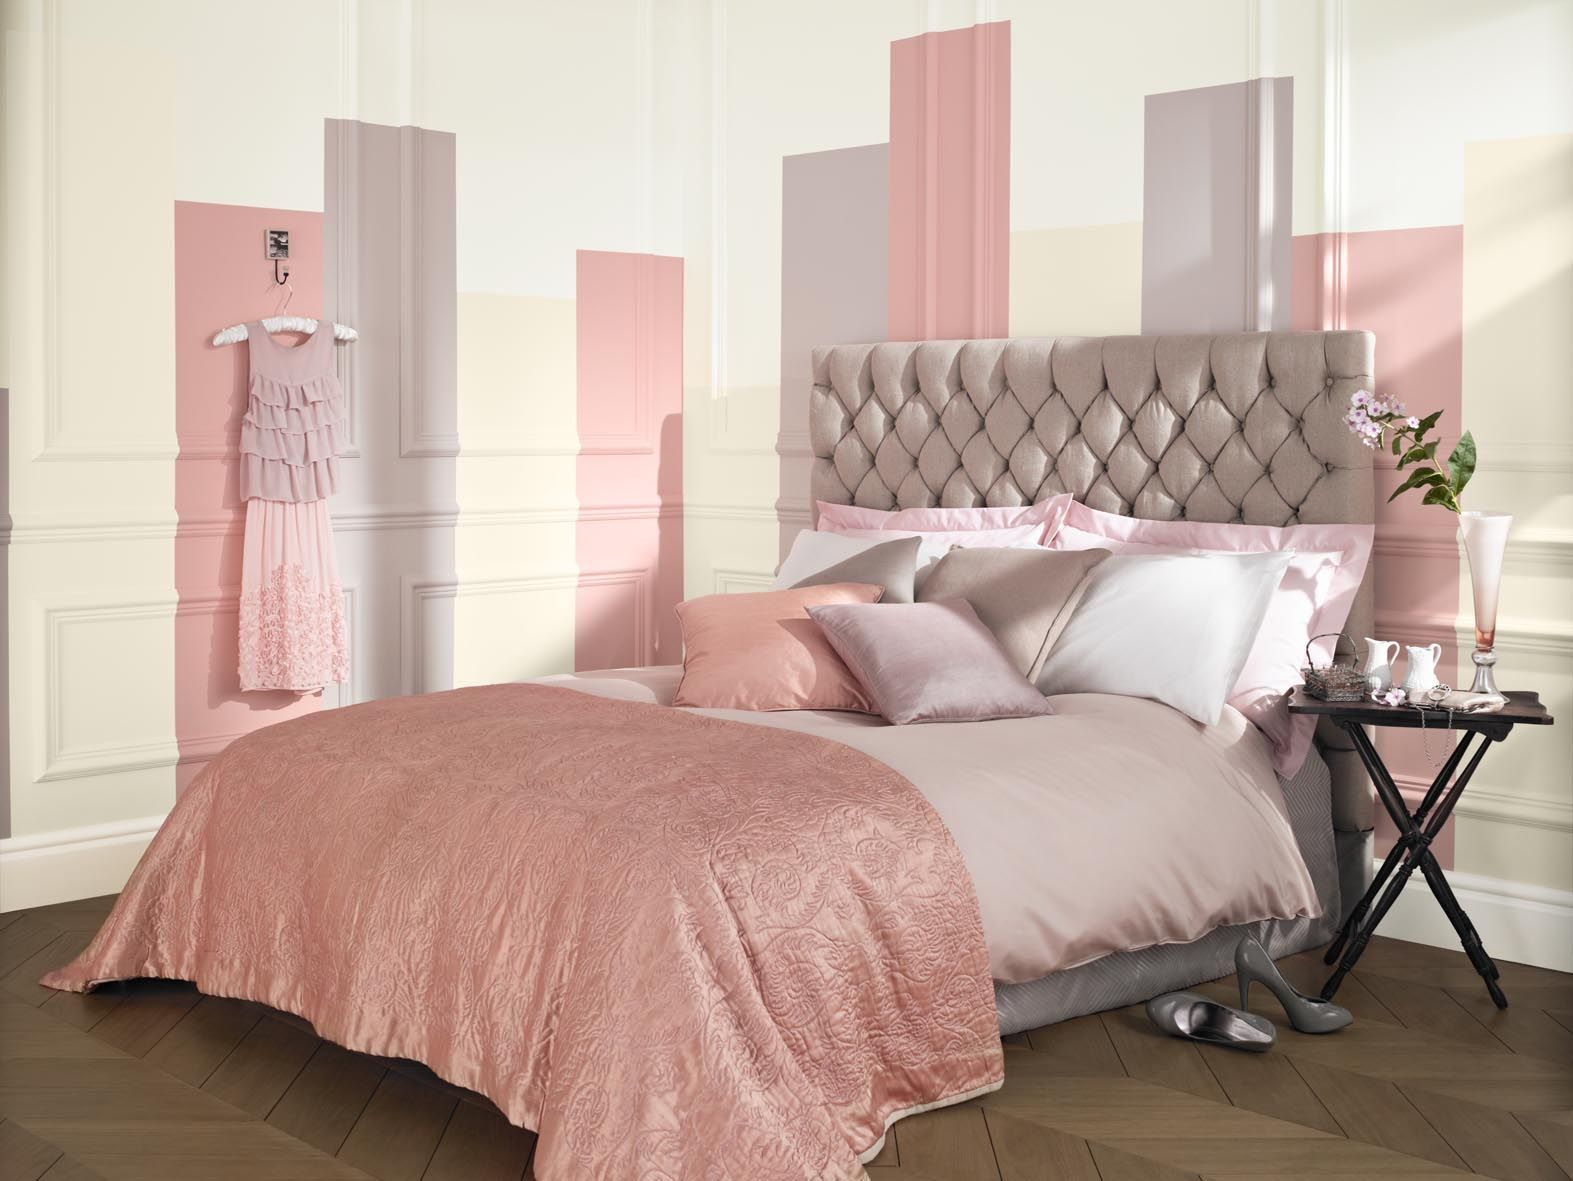 Pink bedroom painting ideas - Feminine Pink Natural Bedroom Painted With Crown Matt Emulsion In Honey Fever Pale Pink